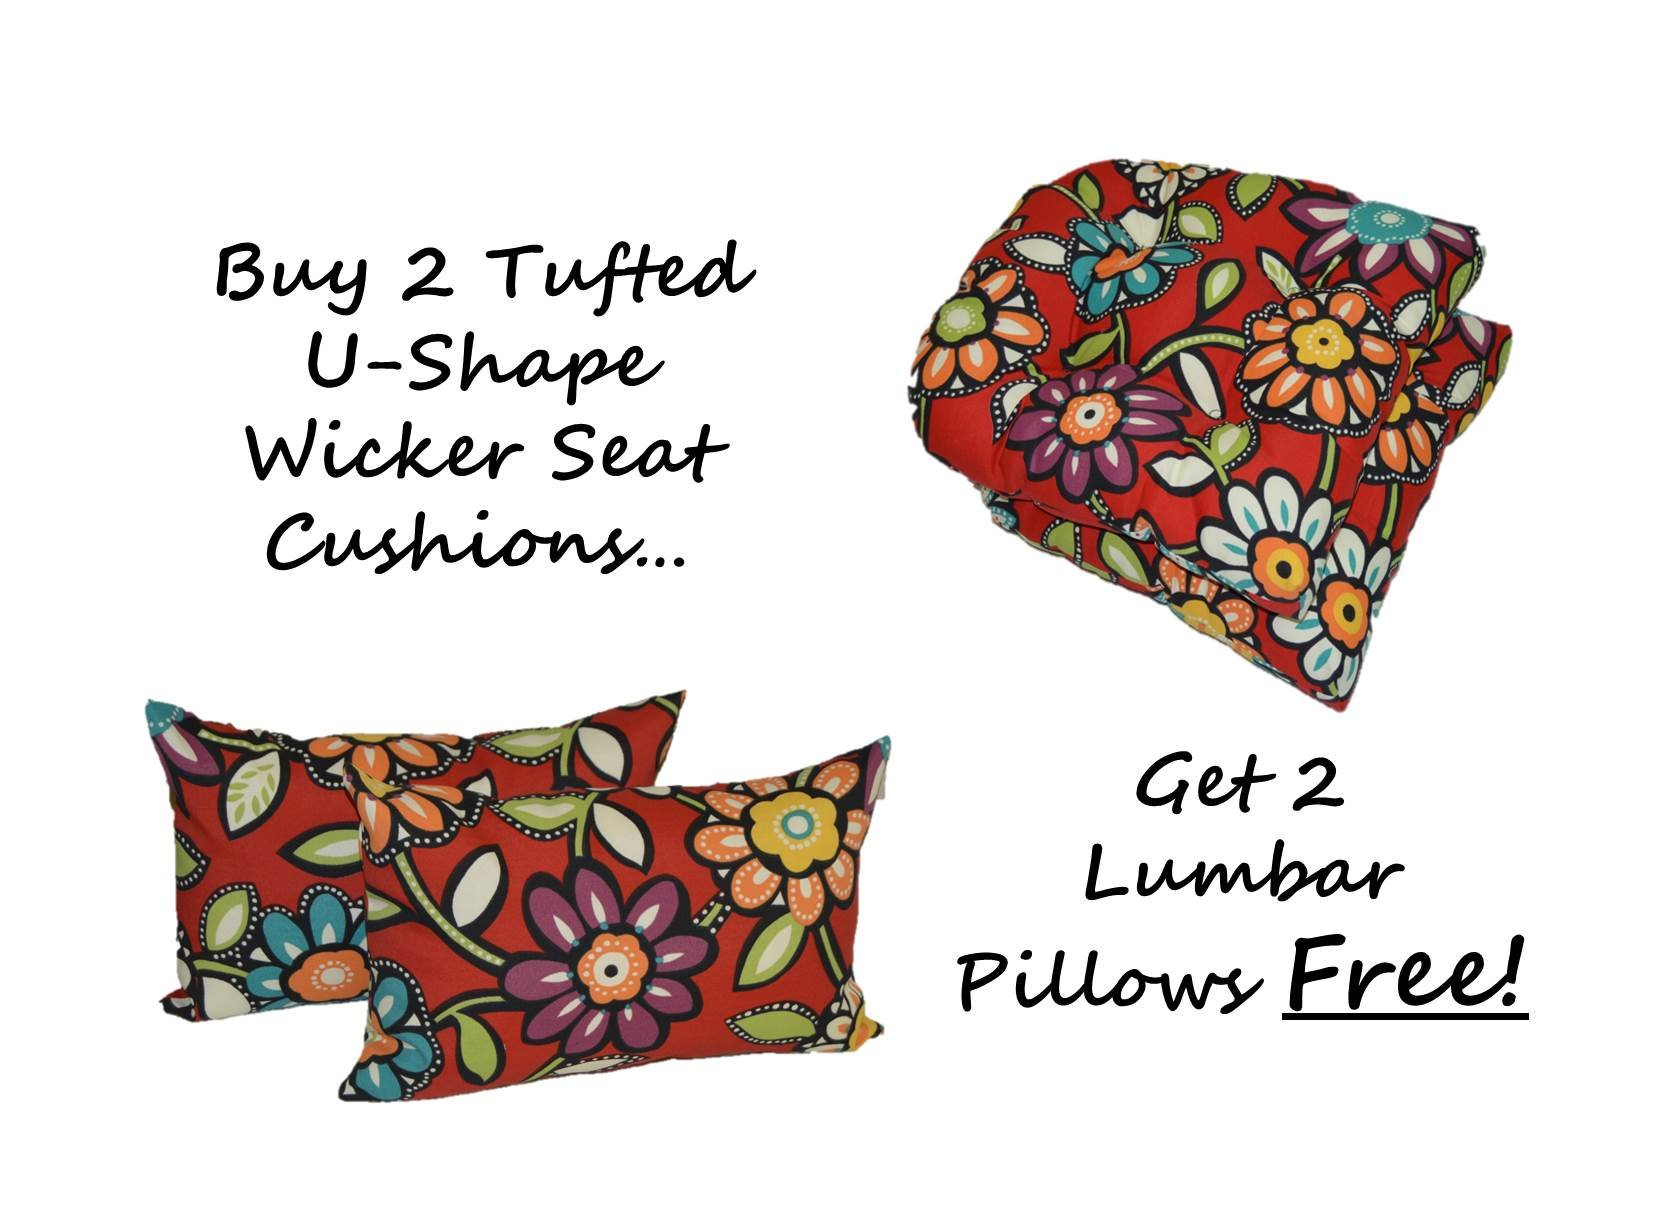 Set of 2 - Indoor / Outdoor Universal Tufted U-shape Cushions for Wicker Chair Seat - Red, Blue, Green, Purple Contemporary Floral + 2 Free Lumbar / Rectangle Pillows